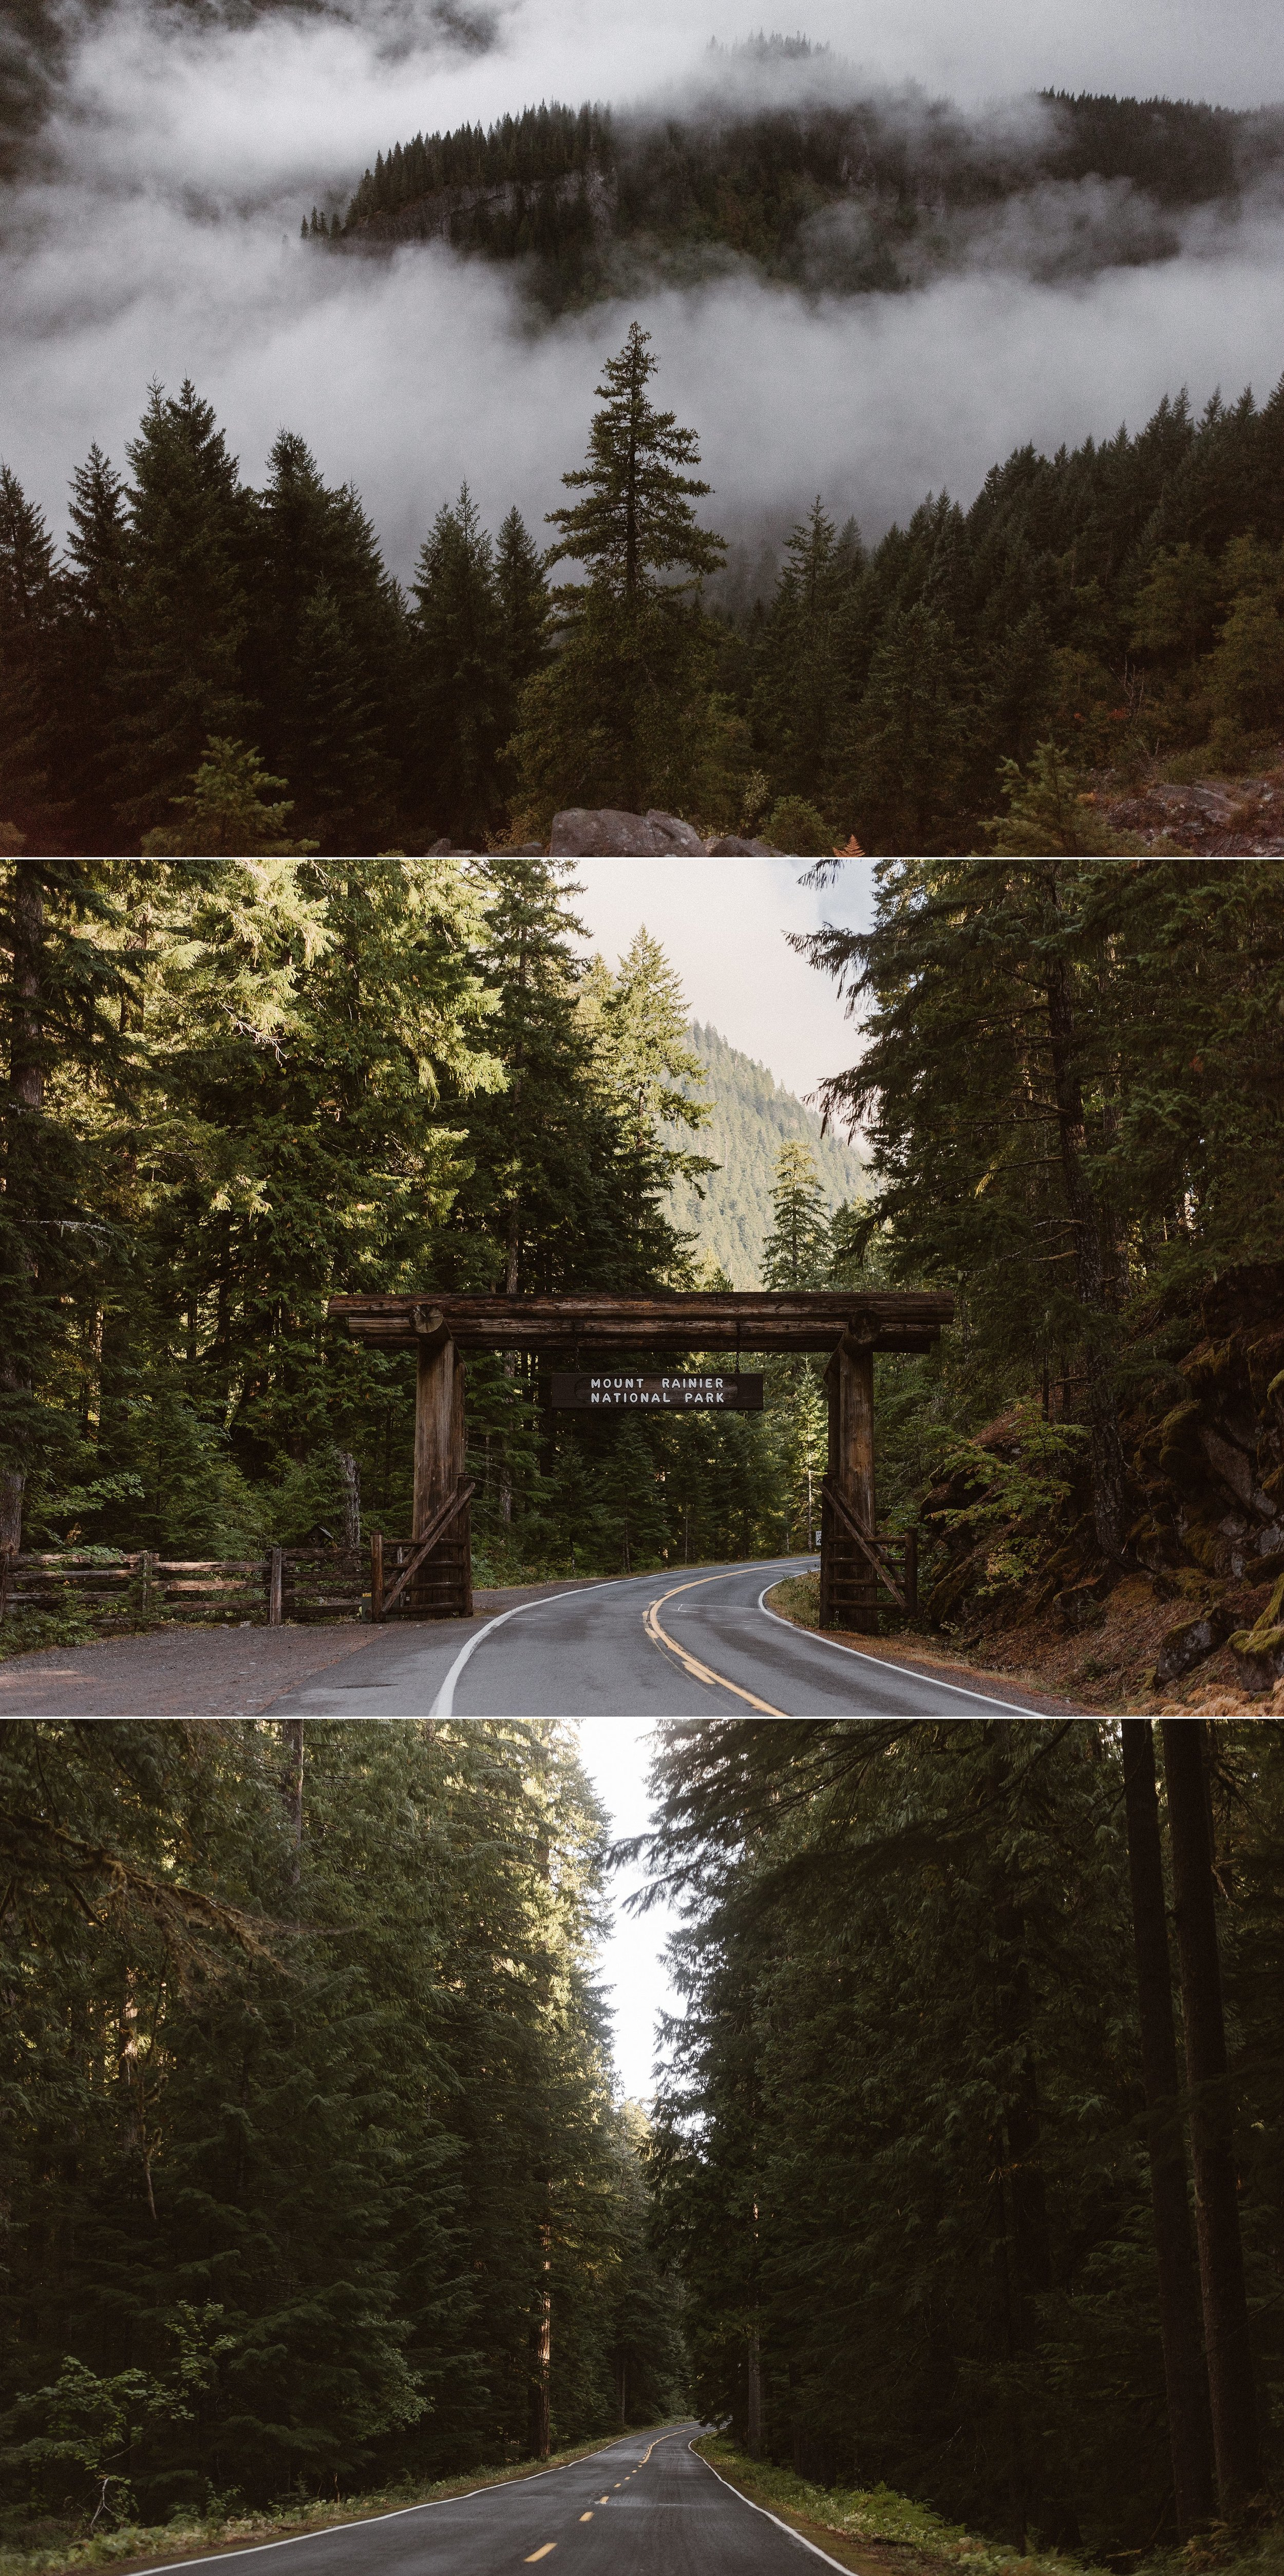 They continued on to higher altitudes through the sun spotted forest of Mount Rainier National Park. The colors and tones of the Pacific Northwest are perfect for any nature lover looking for a forest adventure elopement or intimate wedding. Photos of this foggy Washington wedding by traveling elopement photographer Maddie Mae.